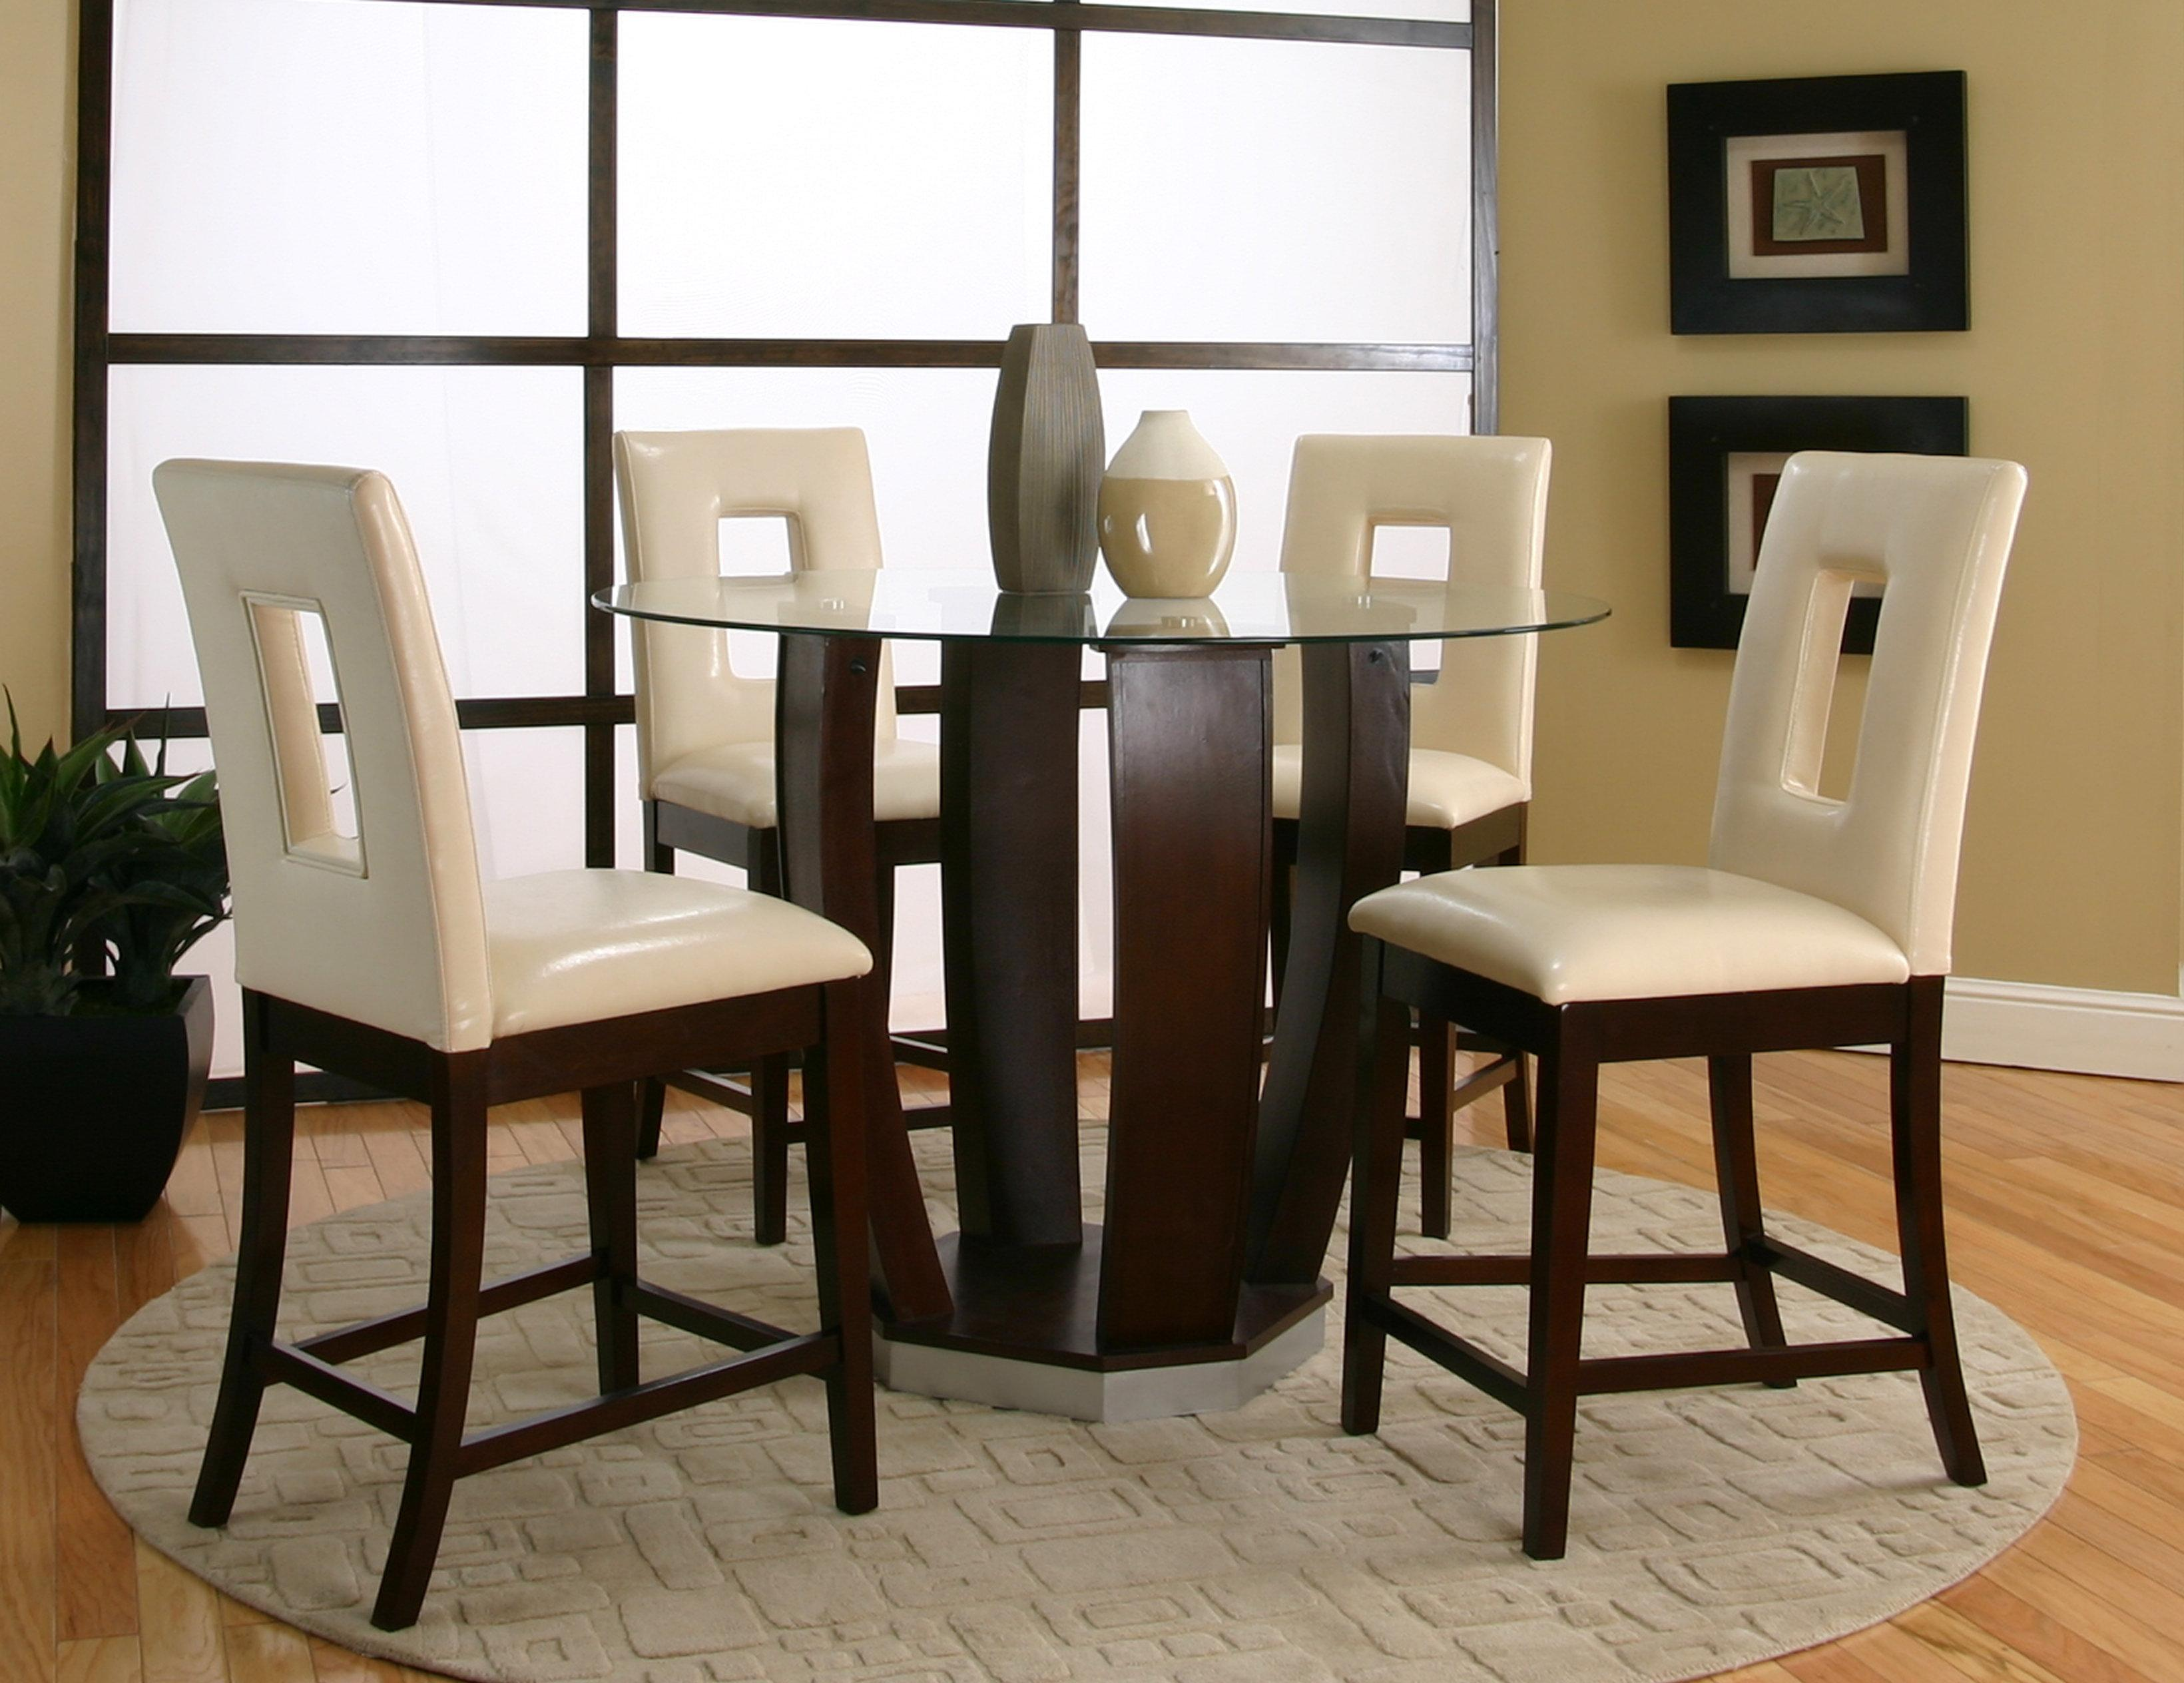 Cramco inc contemporary design emerson tempered glass top pub table set item number